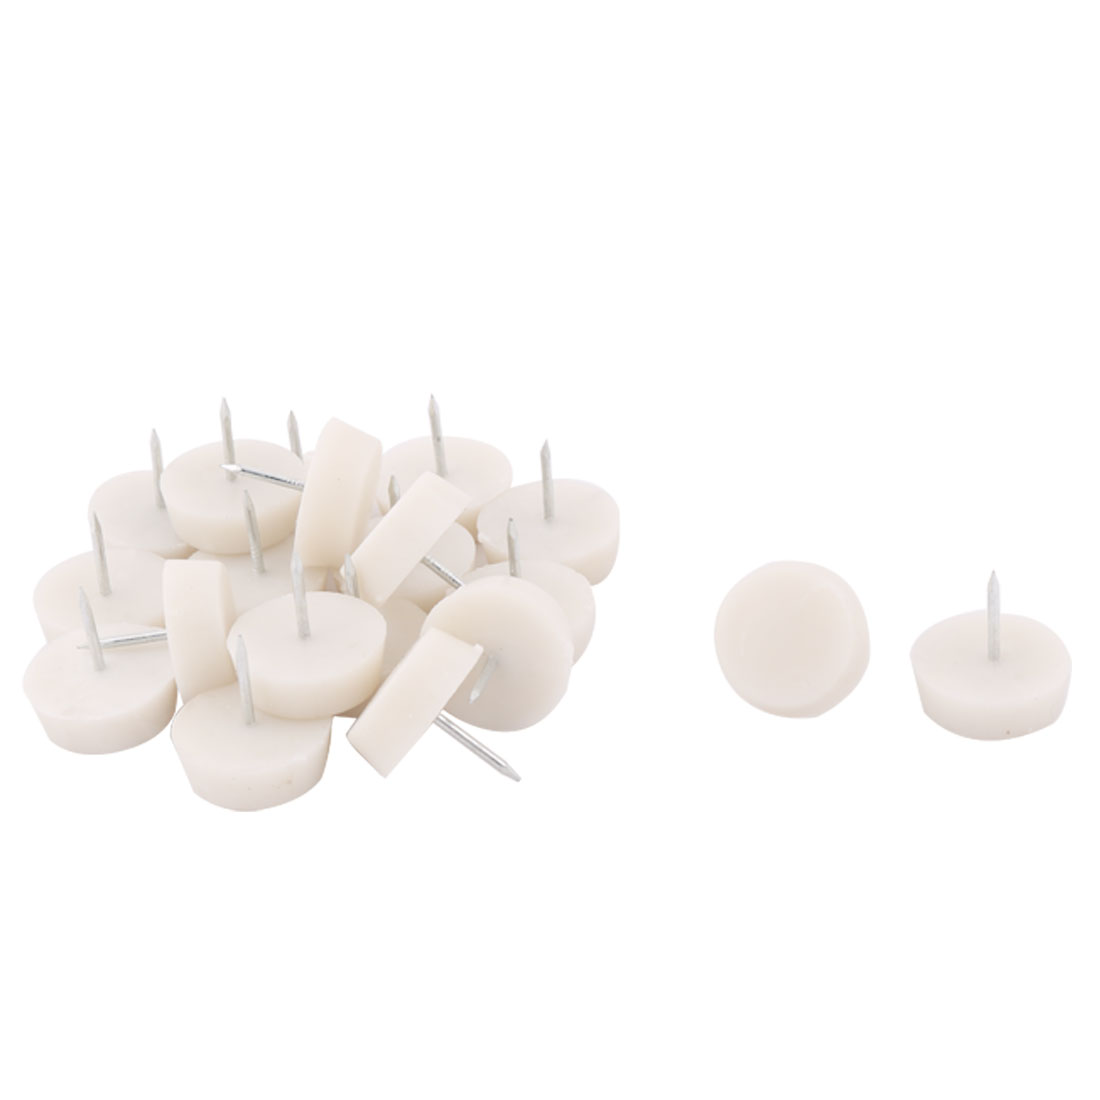 Household Furniture Cabinet Floor Protector Gliding Nail 27mm Height 20pcs